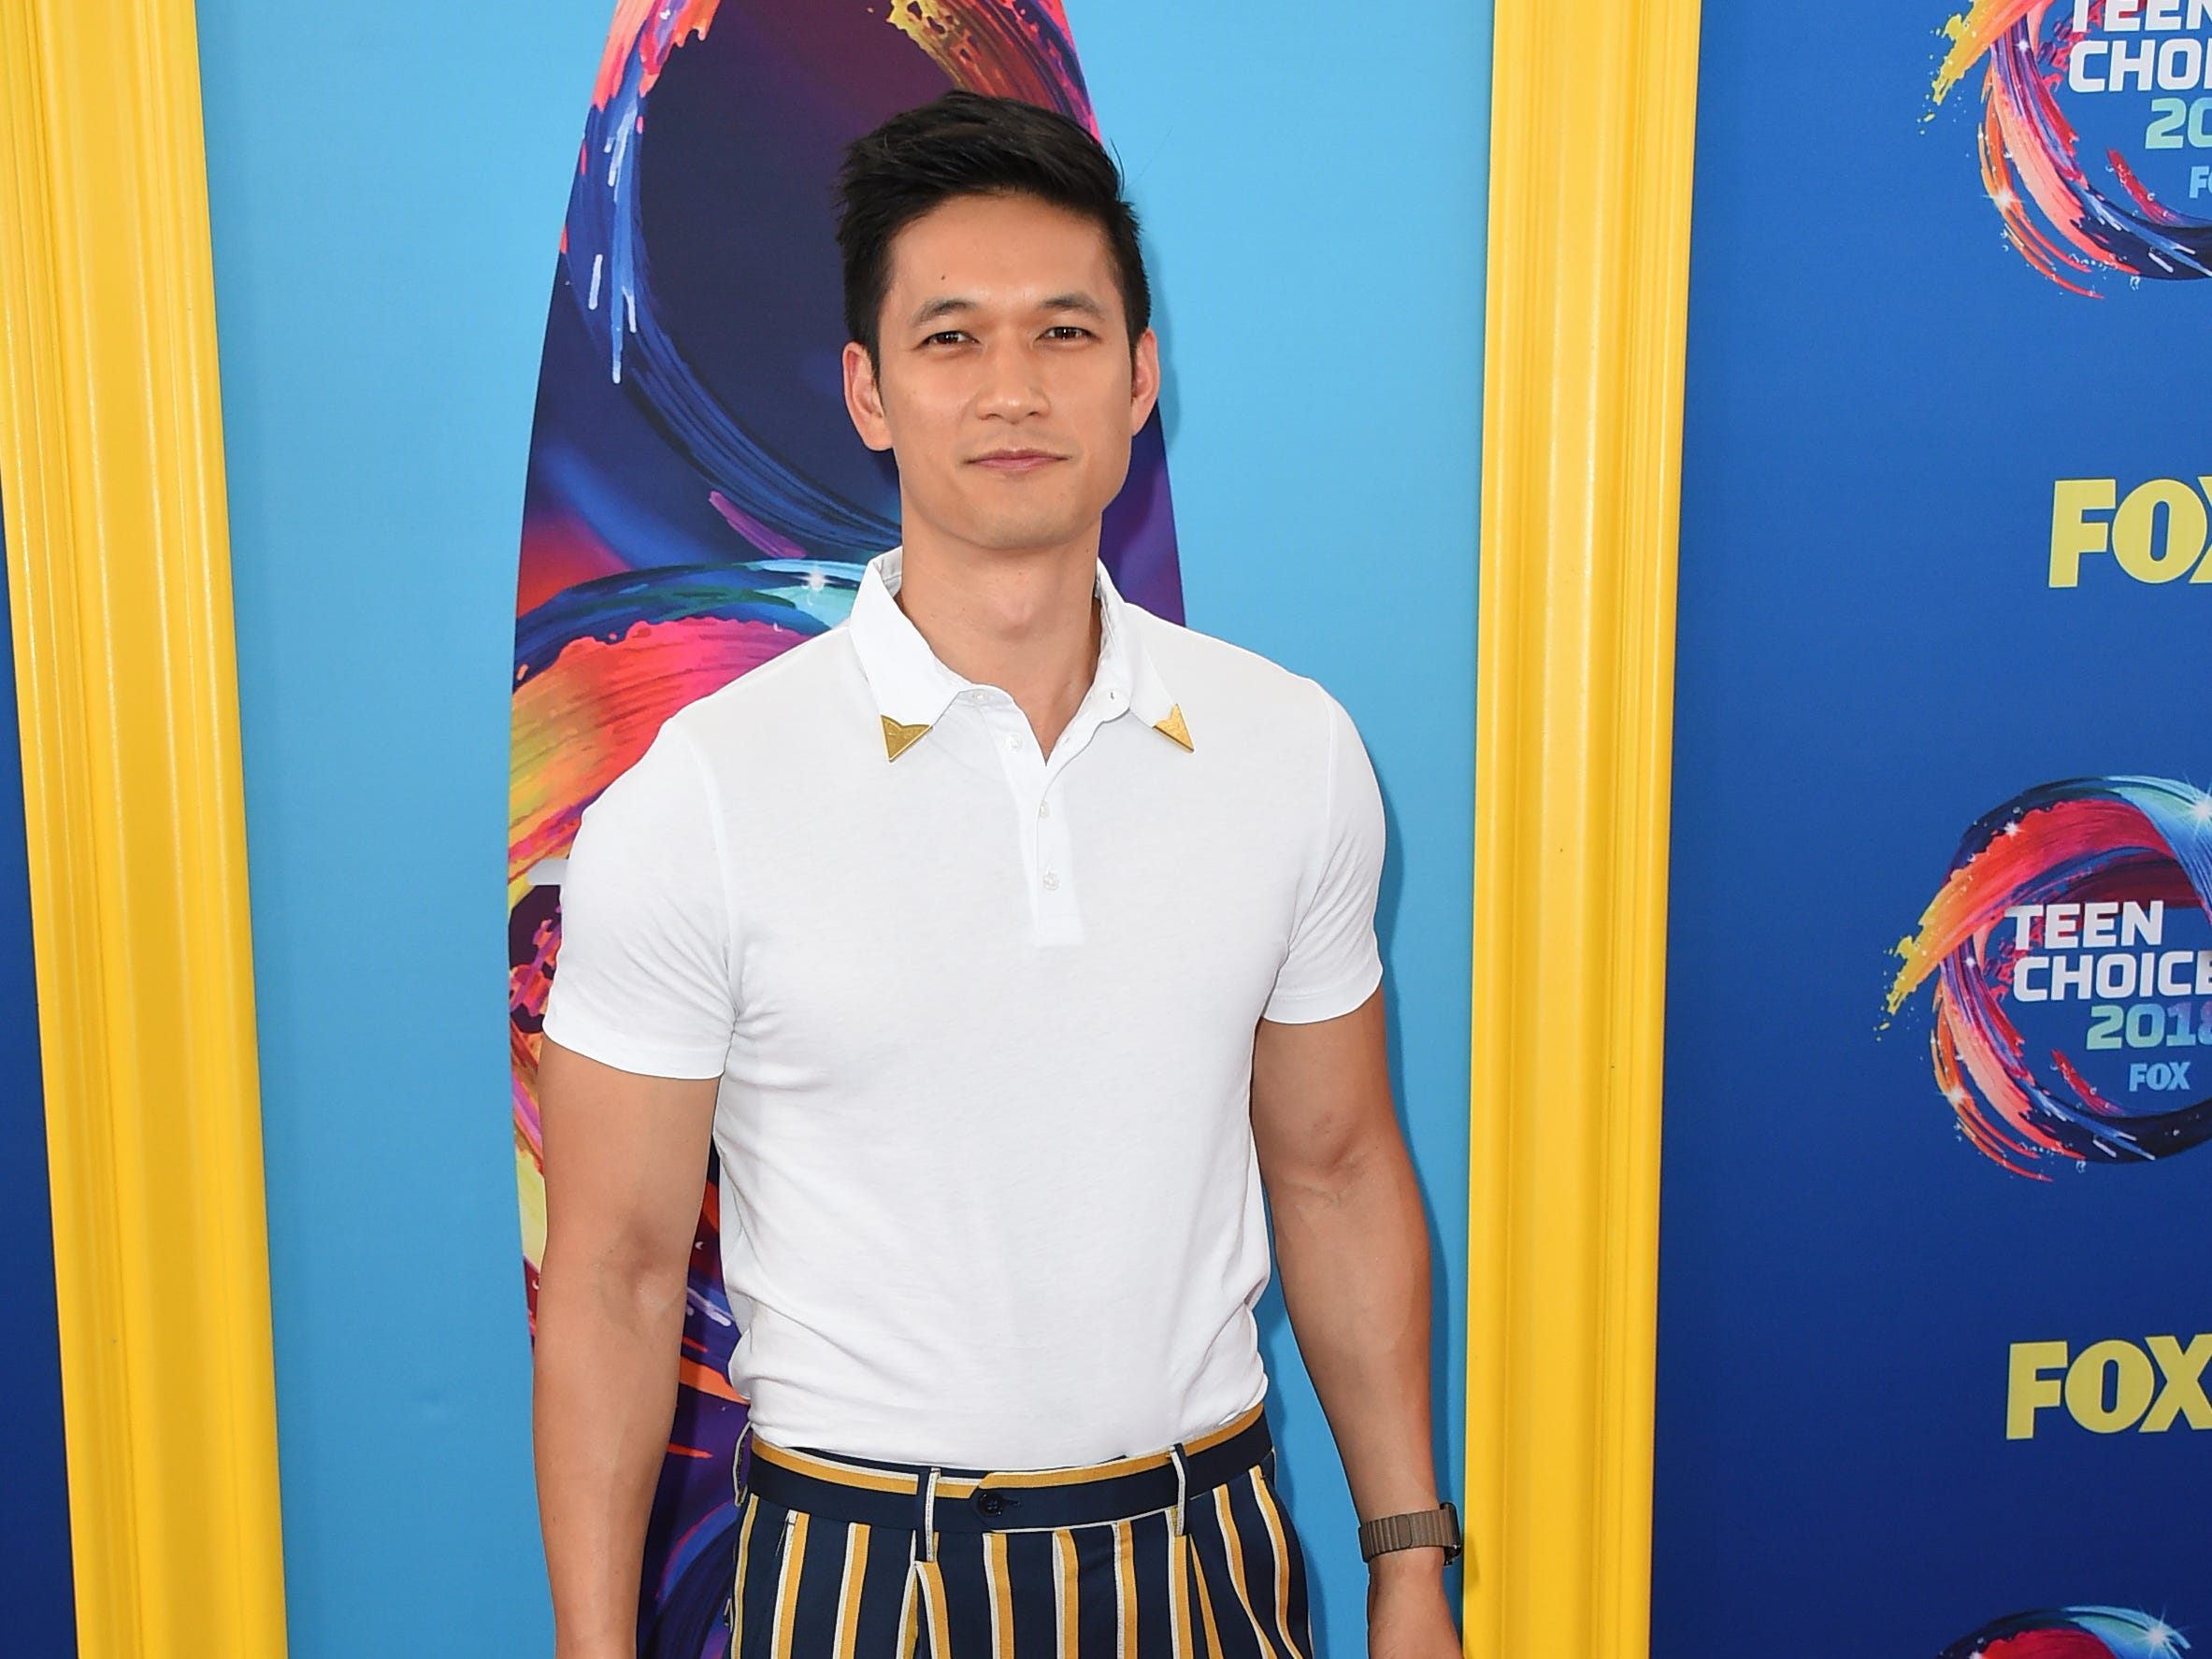 Harry Shum Jr. arrives at the Teen Choice Awards at The Forum on Sunday, Aug. 12, 2018, in Inglewood, Calif. (Photo by Jordan Strauss/Invision/AP) ORG XMIT: CAPM101